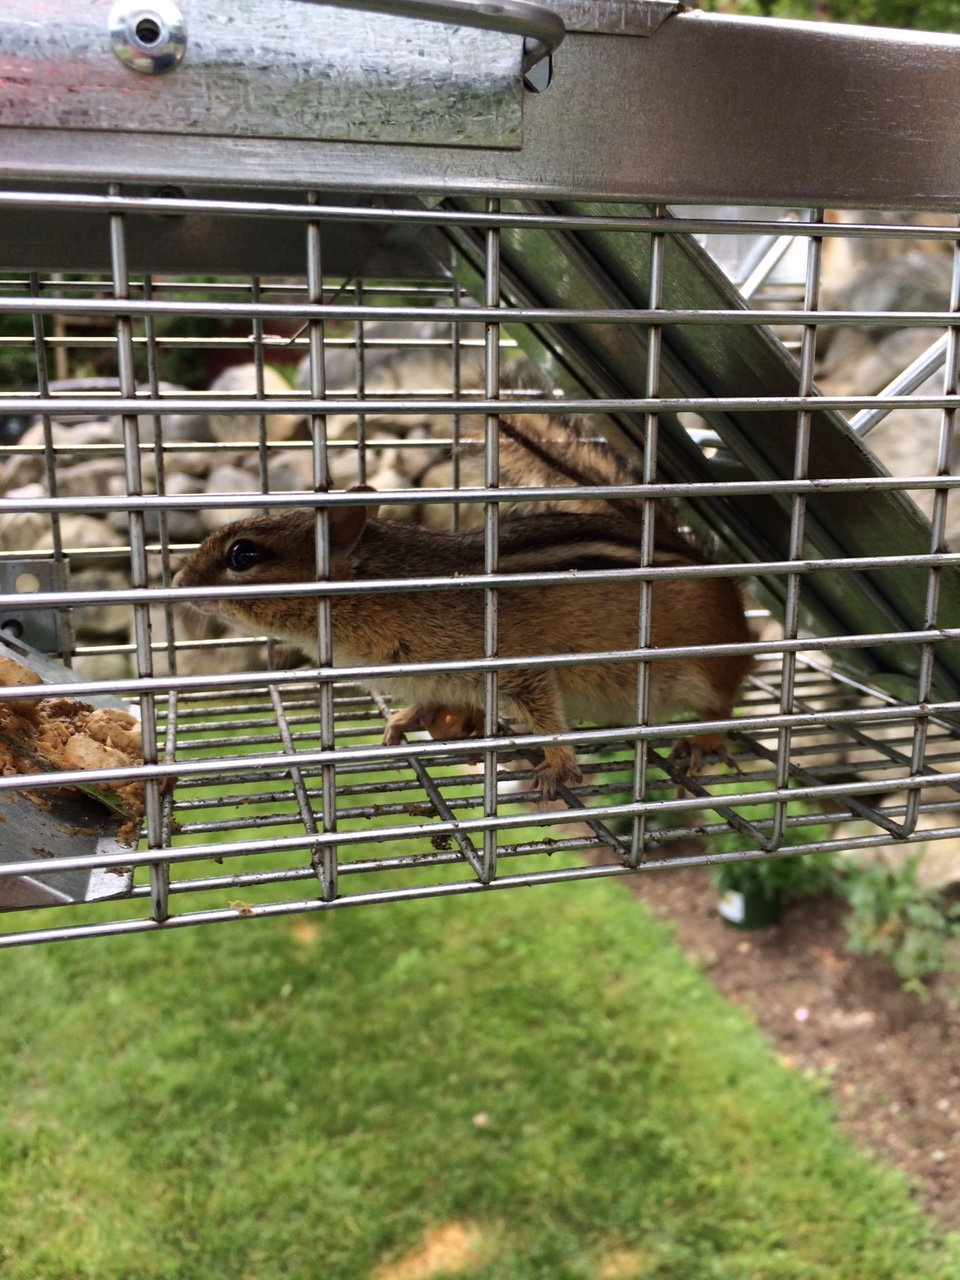 Chipmunk being transported unharmed in the cage.